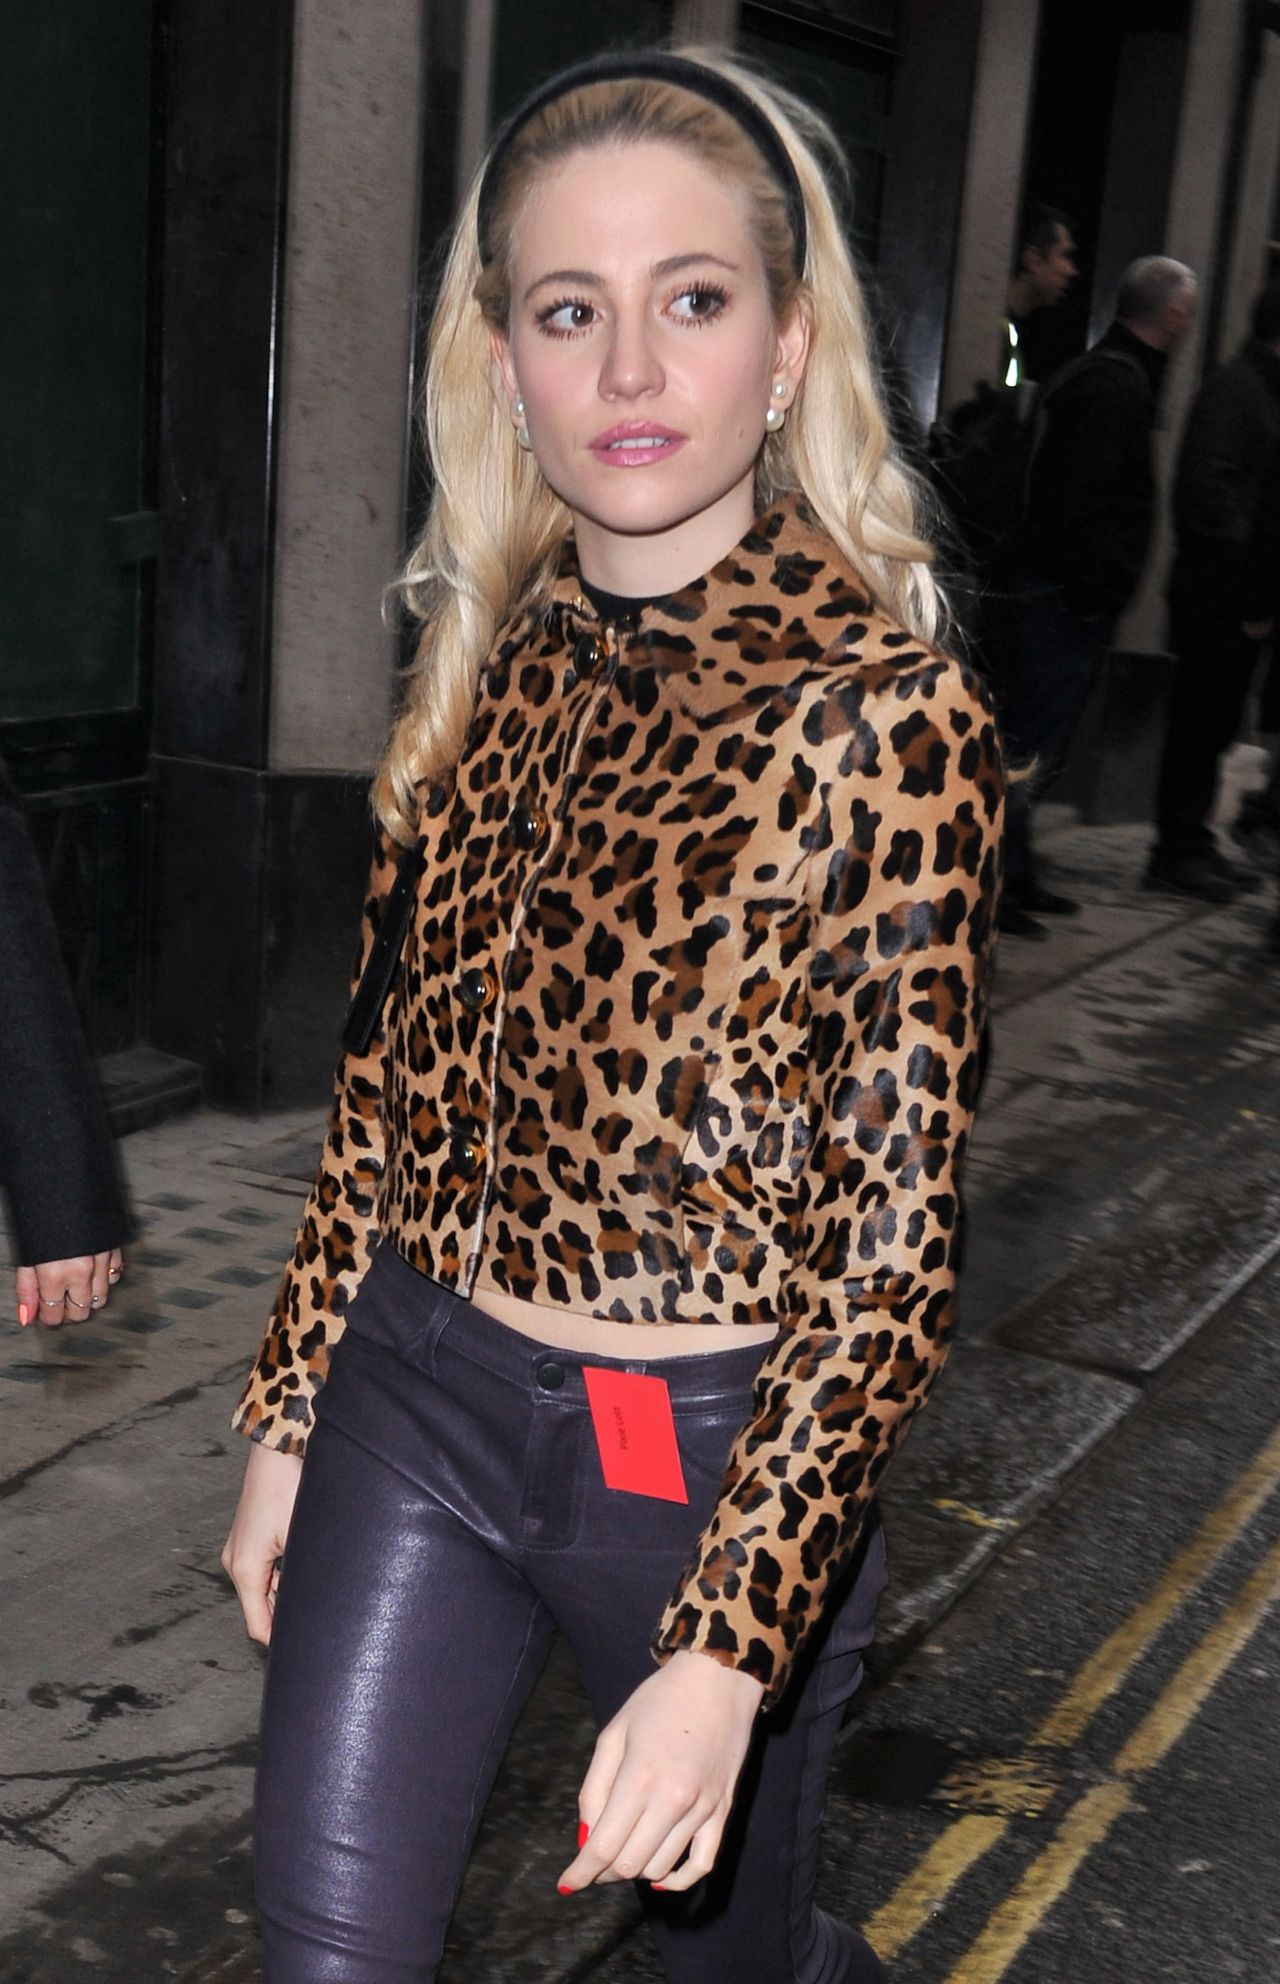 Pixie Lott Style - Out in London, February 2015